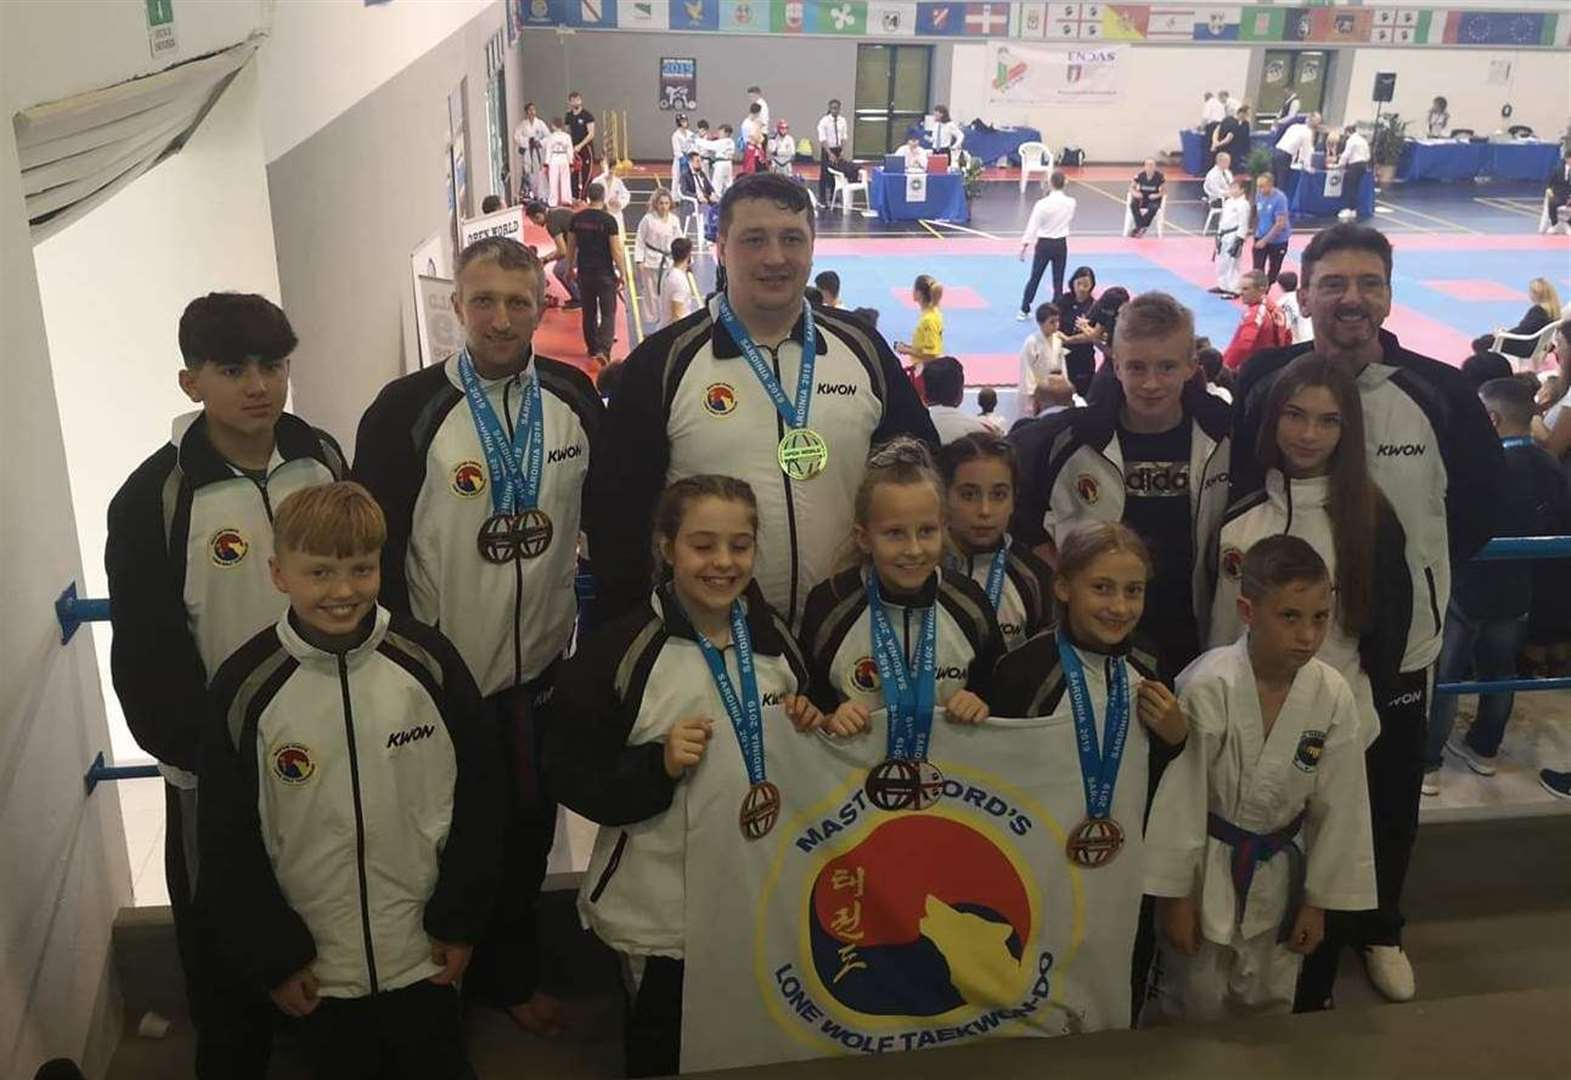 TAEKWONDO: Dedicated dozen do well at taekwondo championships